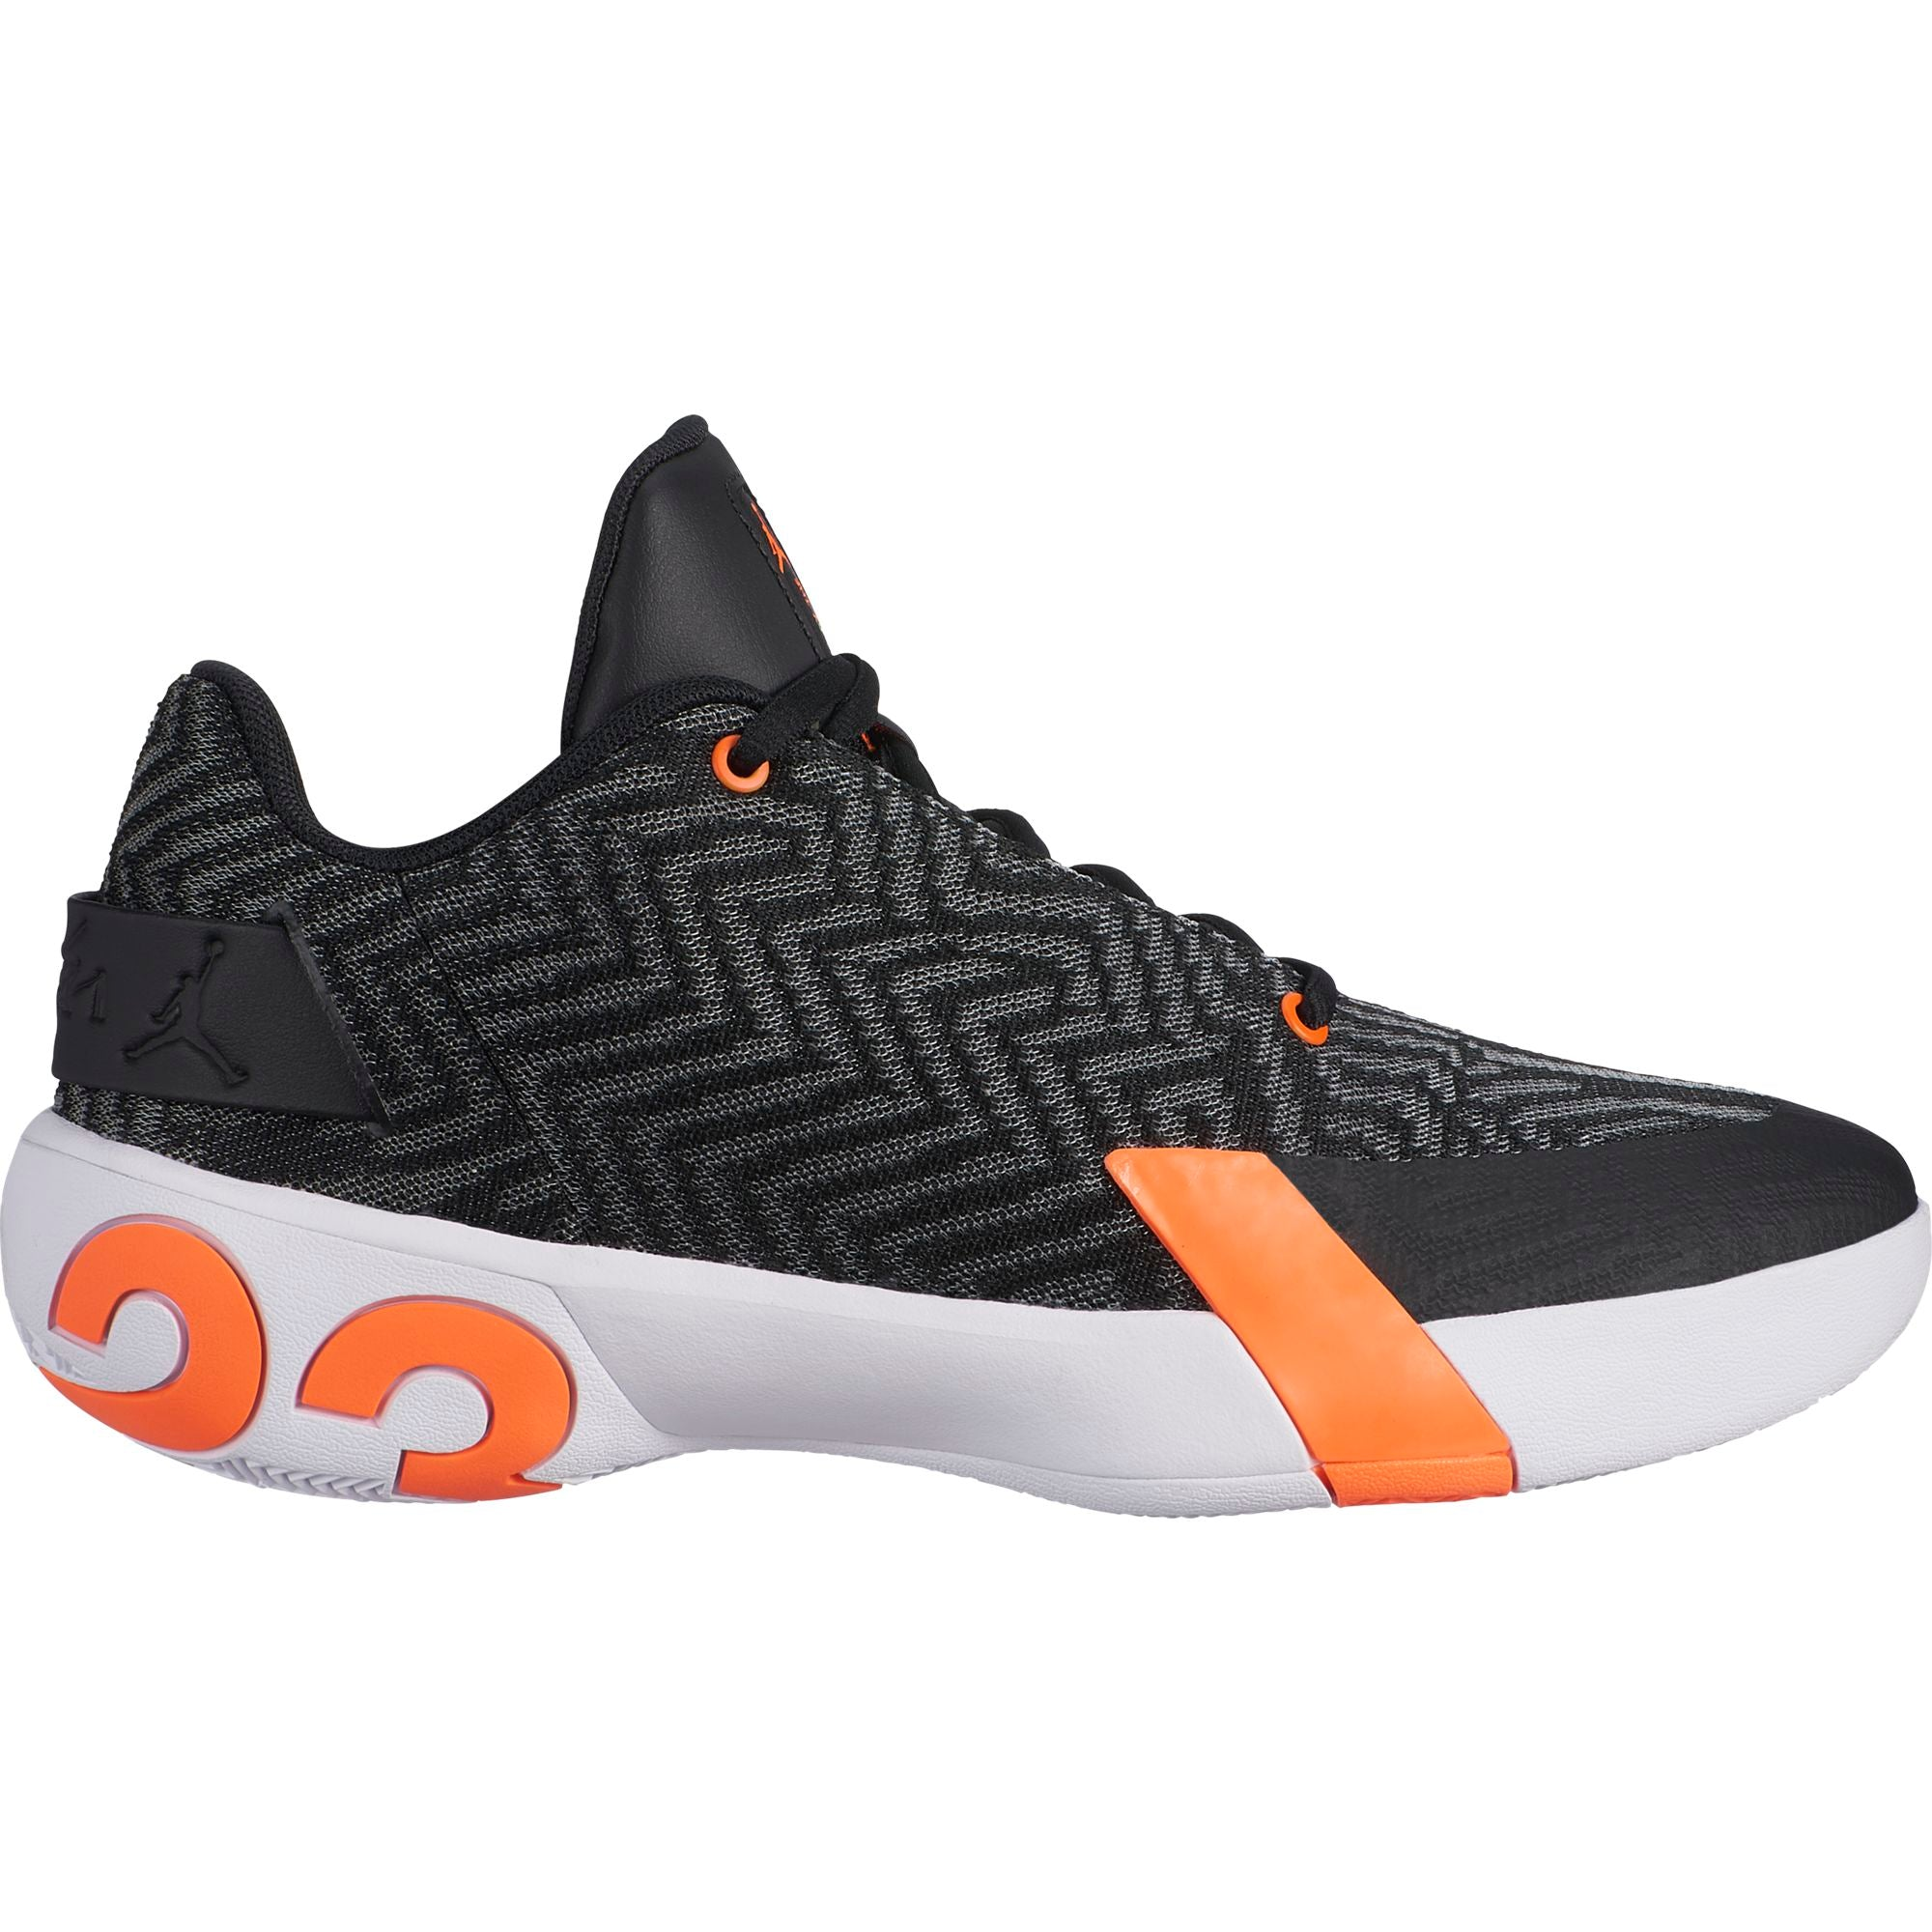 Nike Jordan Ultra Fly 3 Low Basketball Shoe - NK-AO6224-008